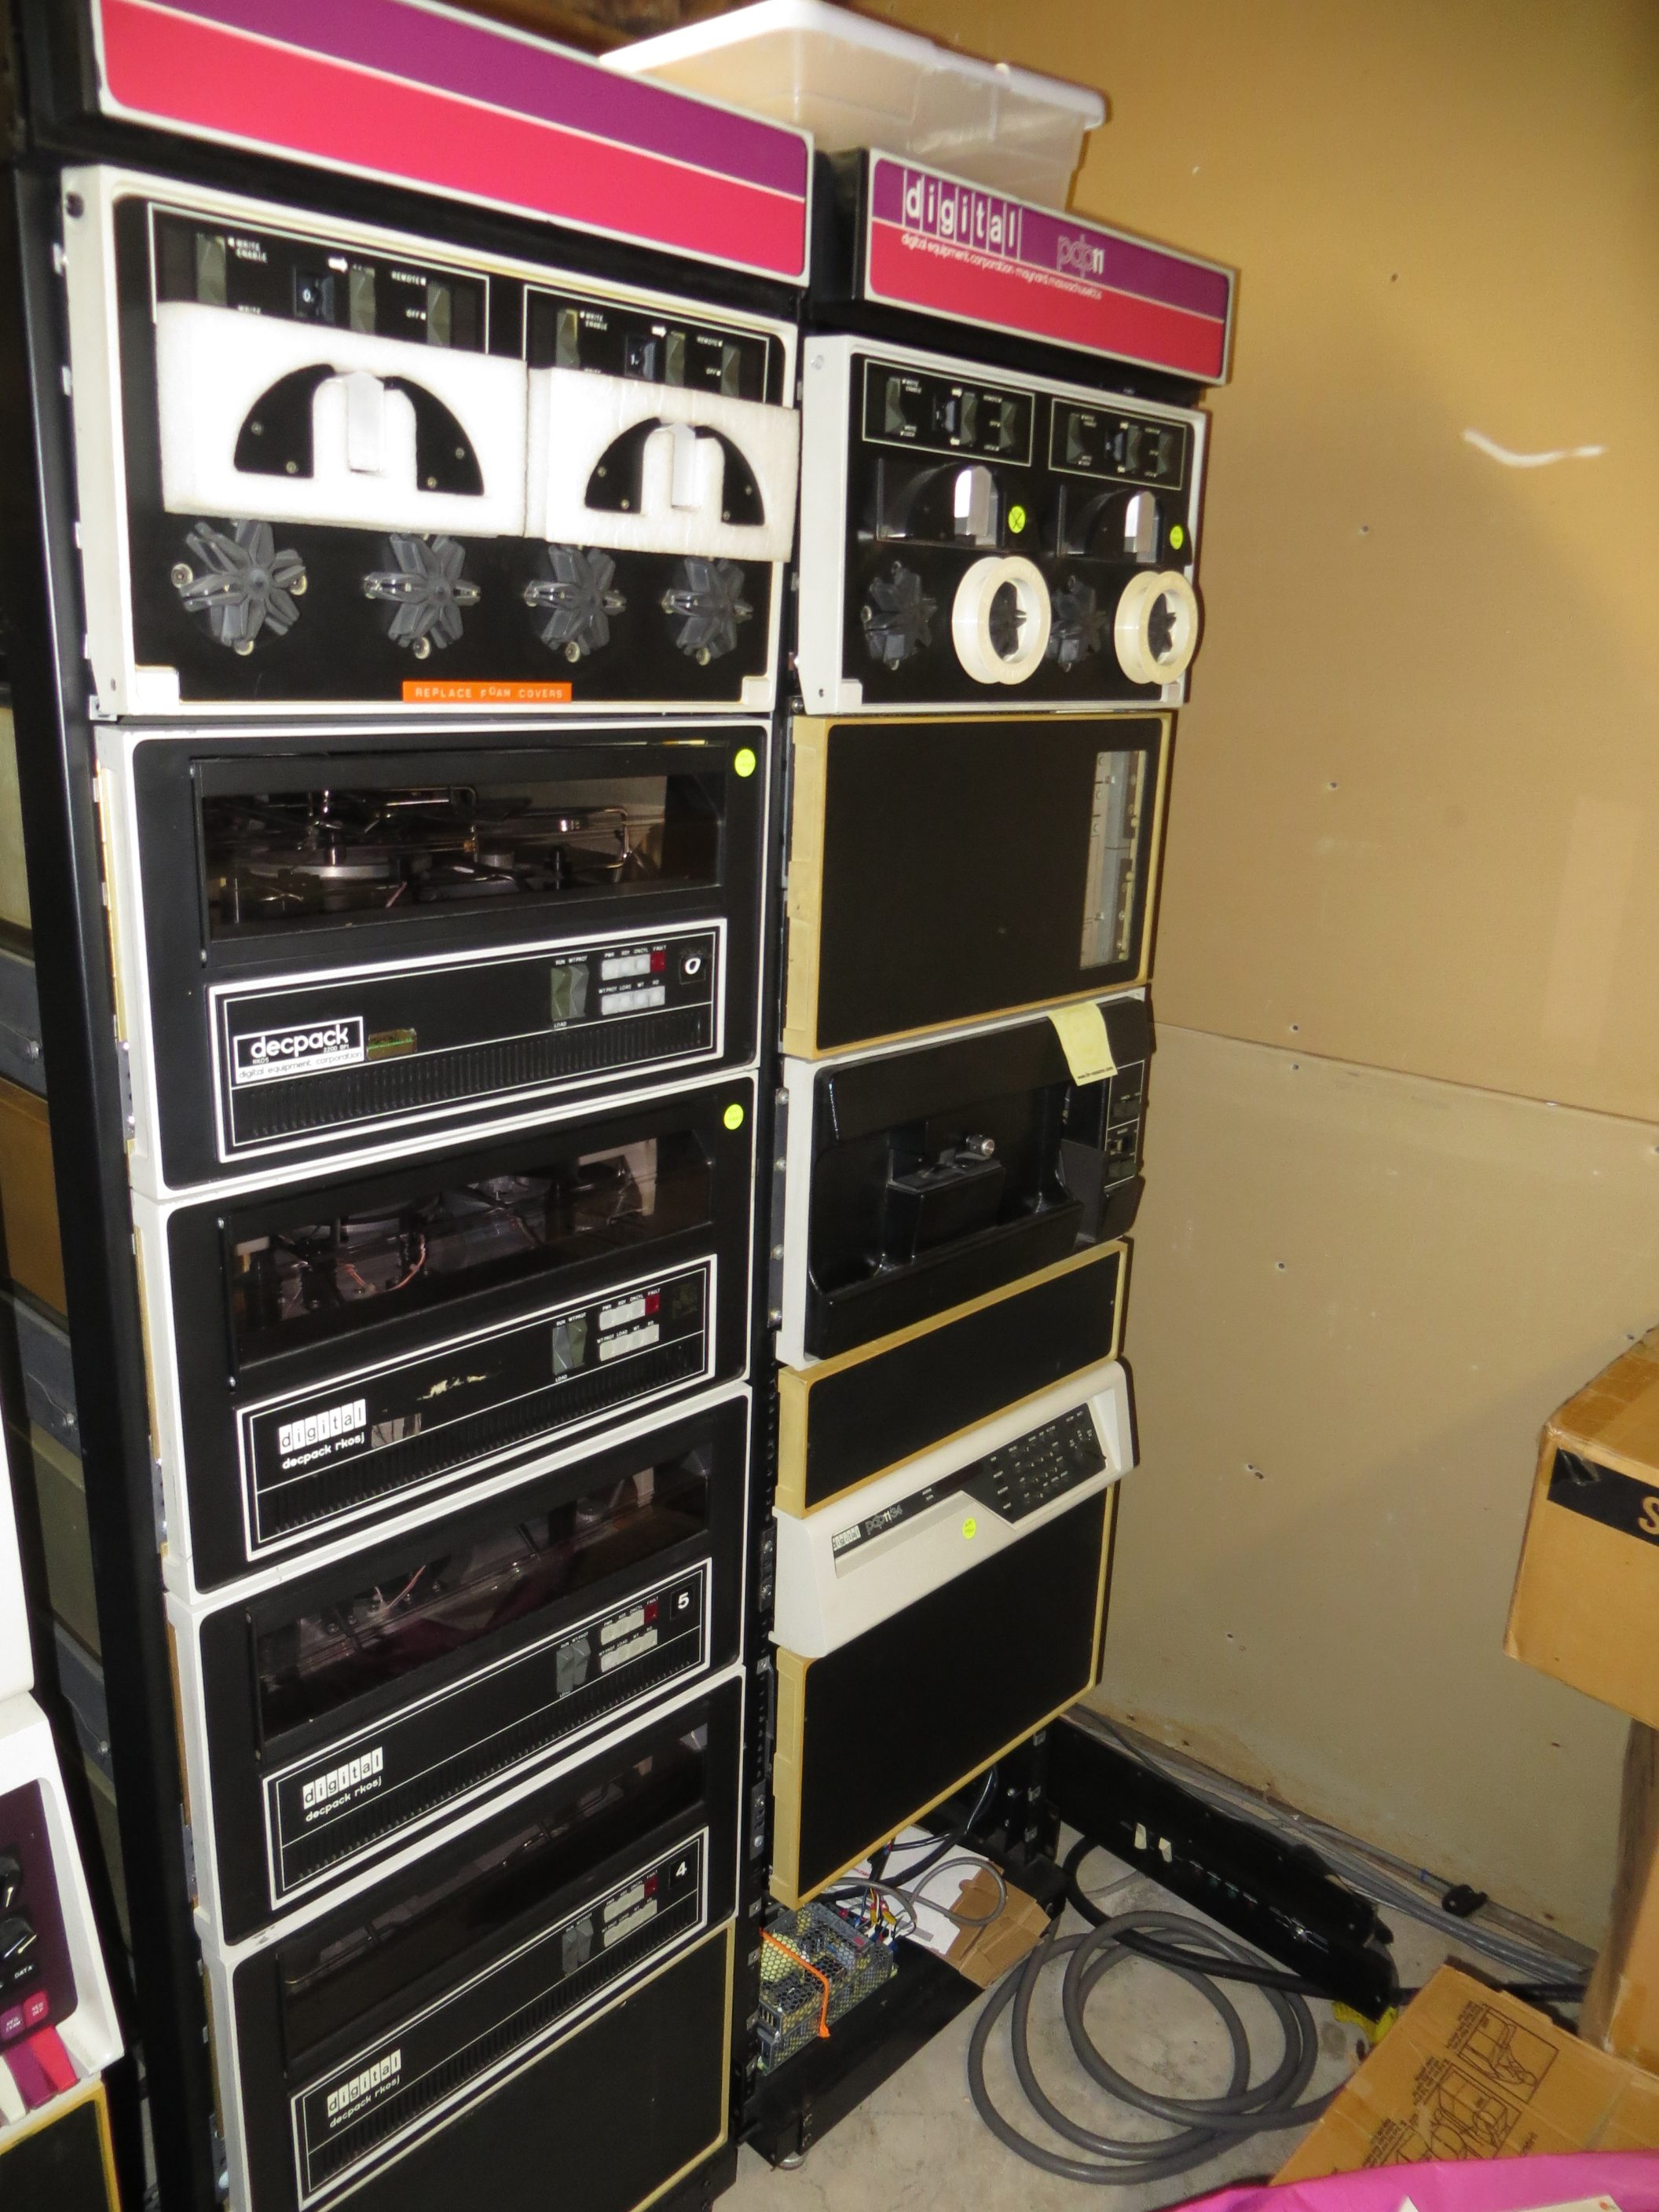 DEC RK05s attached to PDP-11/34